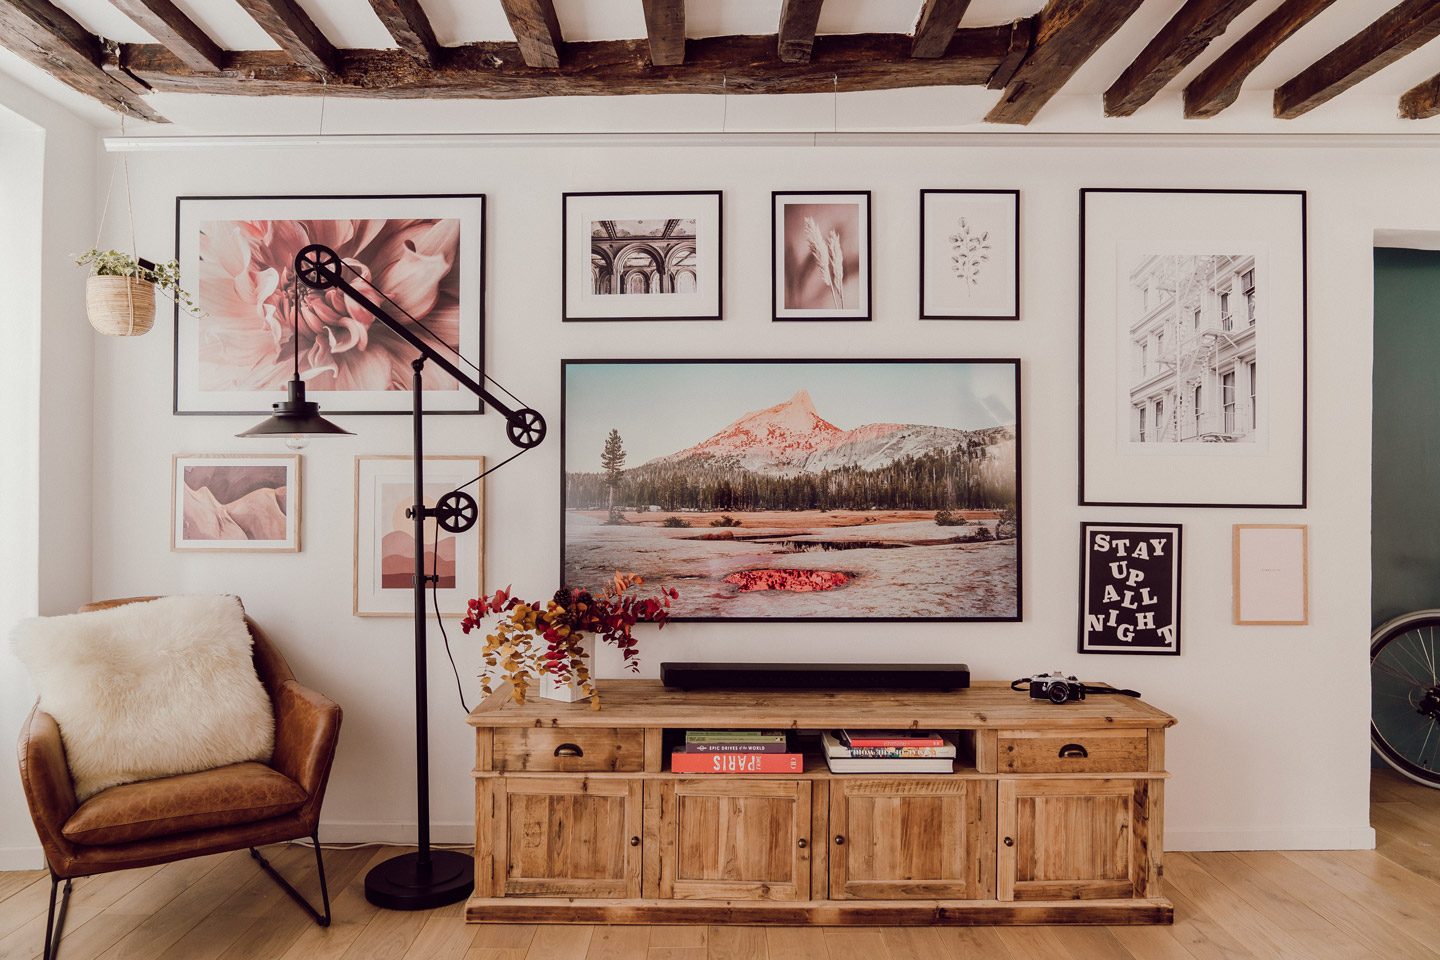 5-petites-choses-desenio-gallery-wall